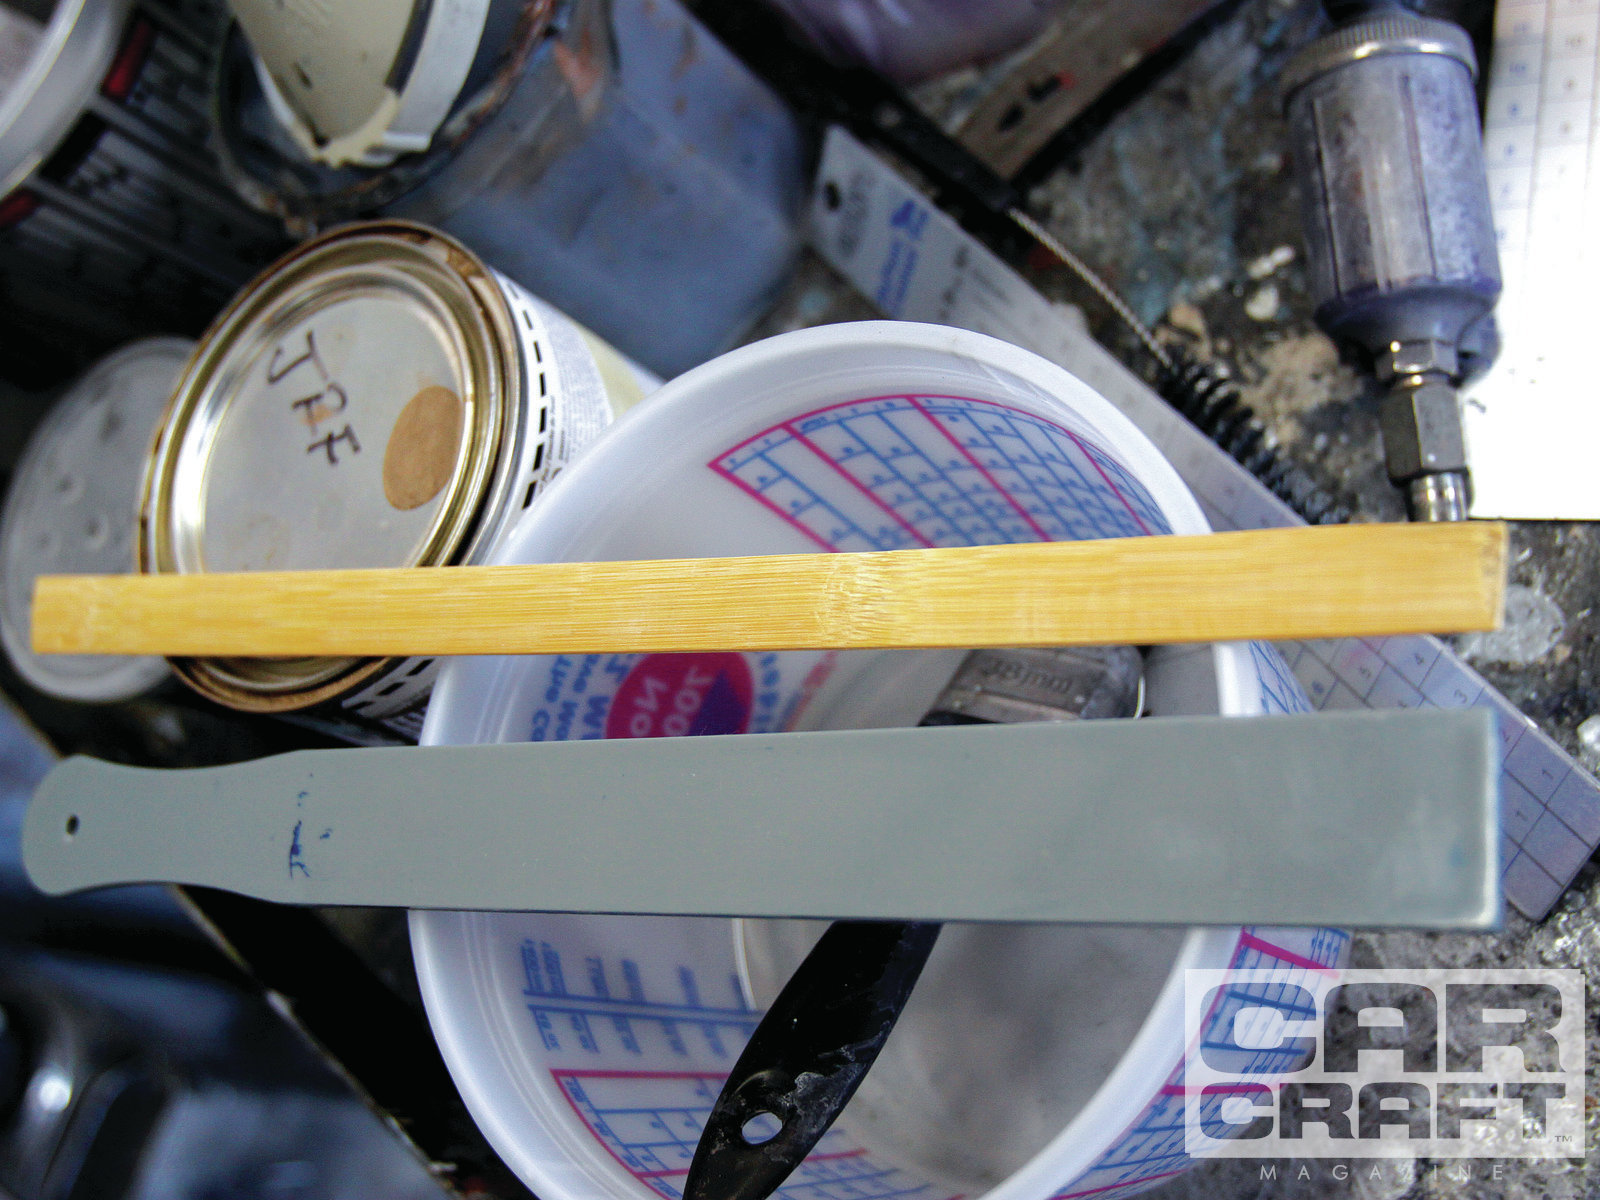 One interesting tip Praveen shared with us was his recommendation to use plastic, rather than wood, stir sticks with waterborne paint. He described a few instances where the tints had separated out of the waterborne base and wicked up into the wooden stir stick. It wasn't much but apparently enough to affect the final color of the car. He says he now only uses plastic stir sticks to mix waterborne paint.